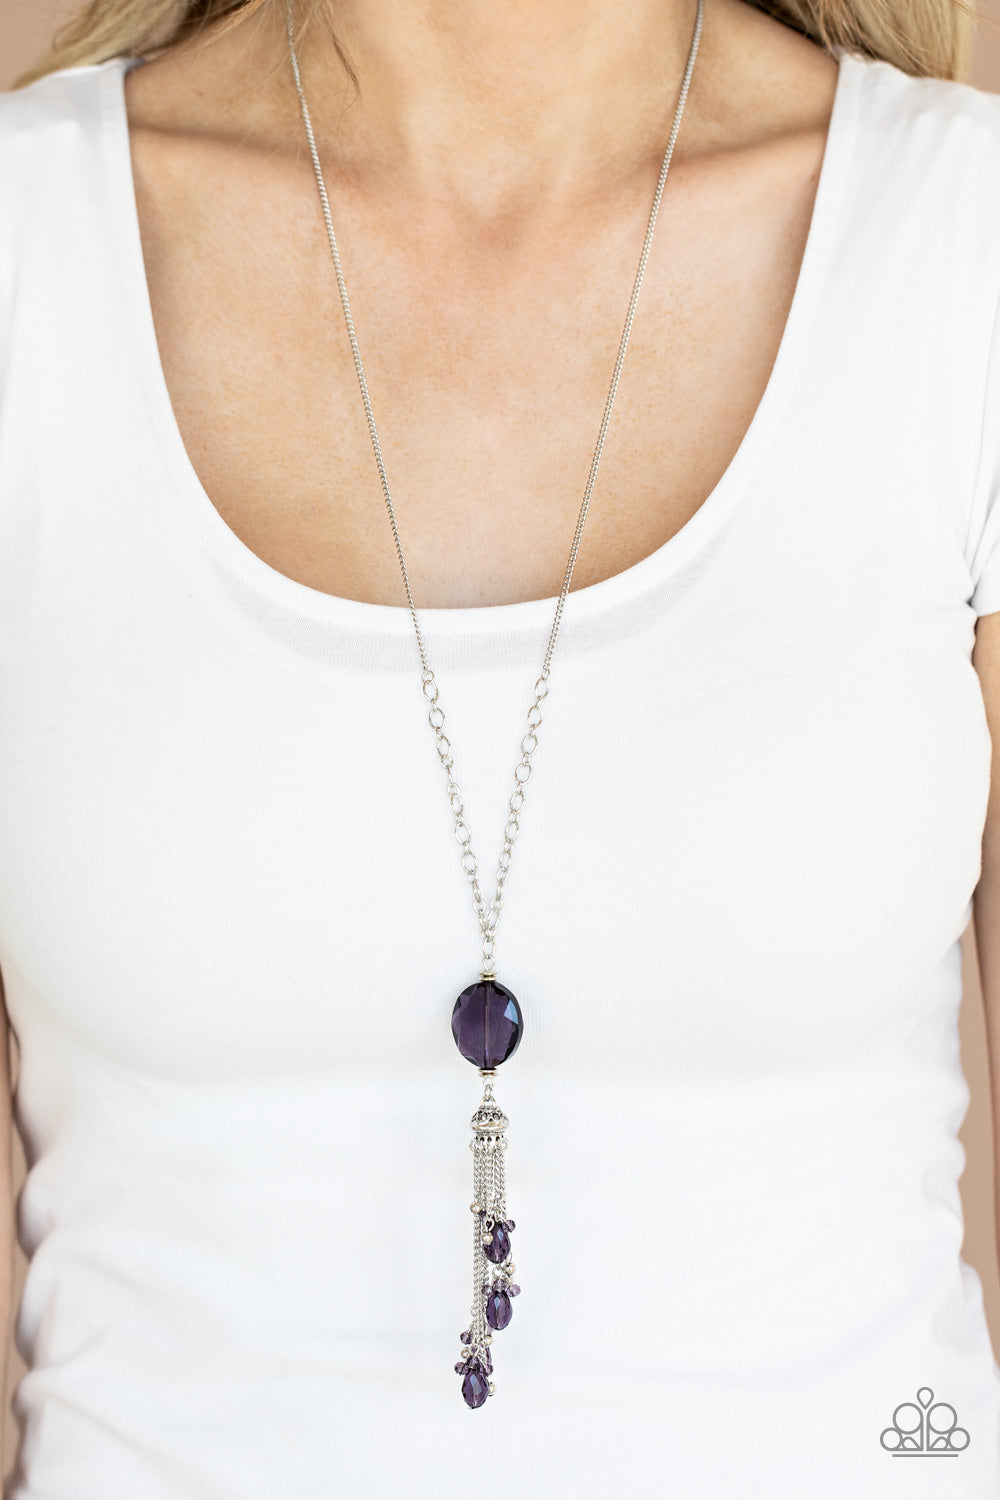 Paparazzi Jewelry & Accessories - Fringe Flavor - Purple Necklace. Bling By Titia Boutique